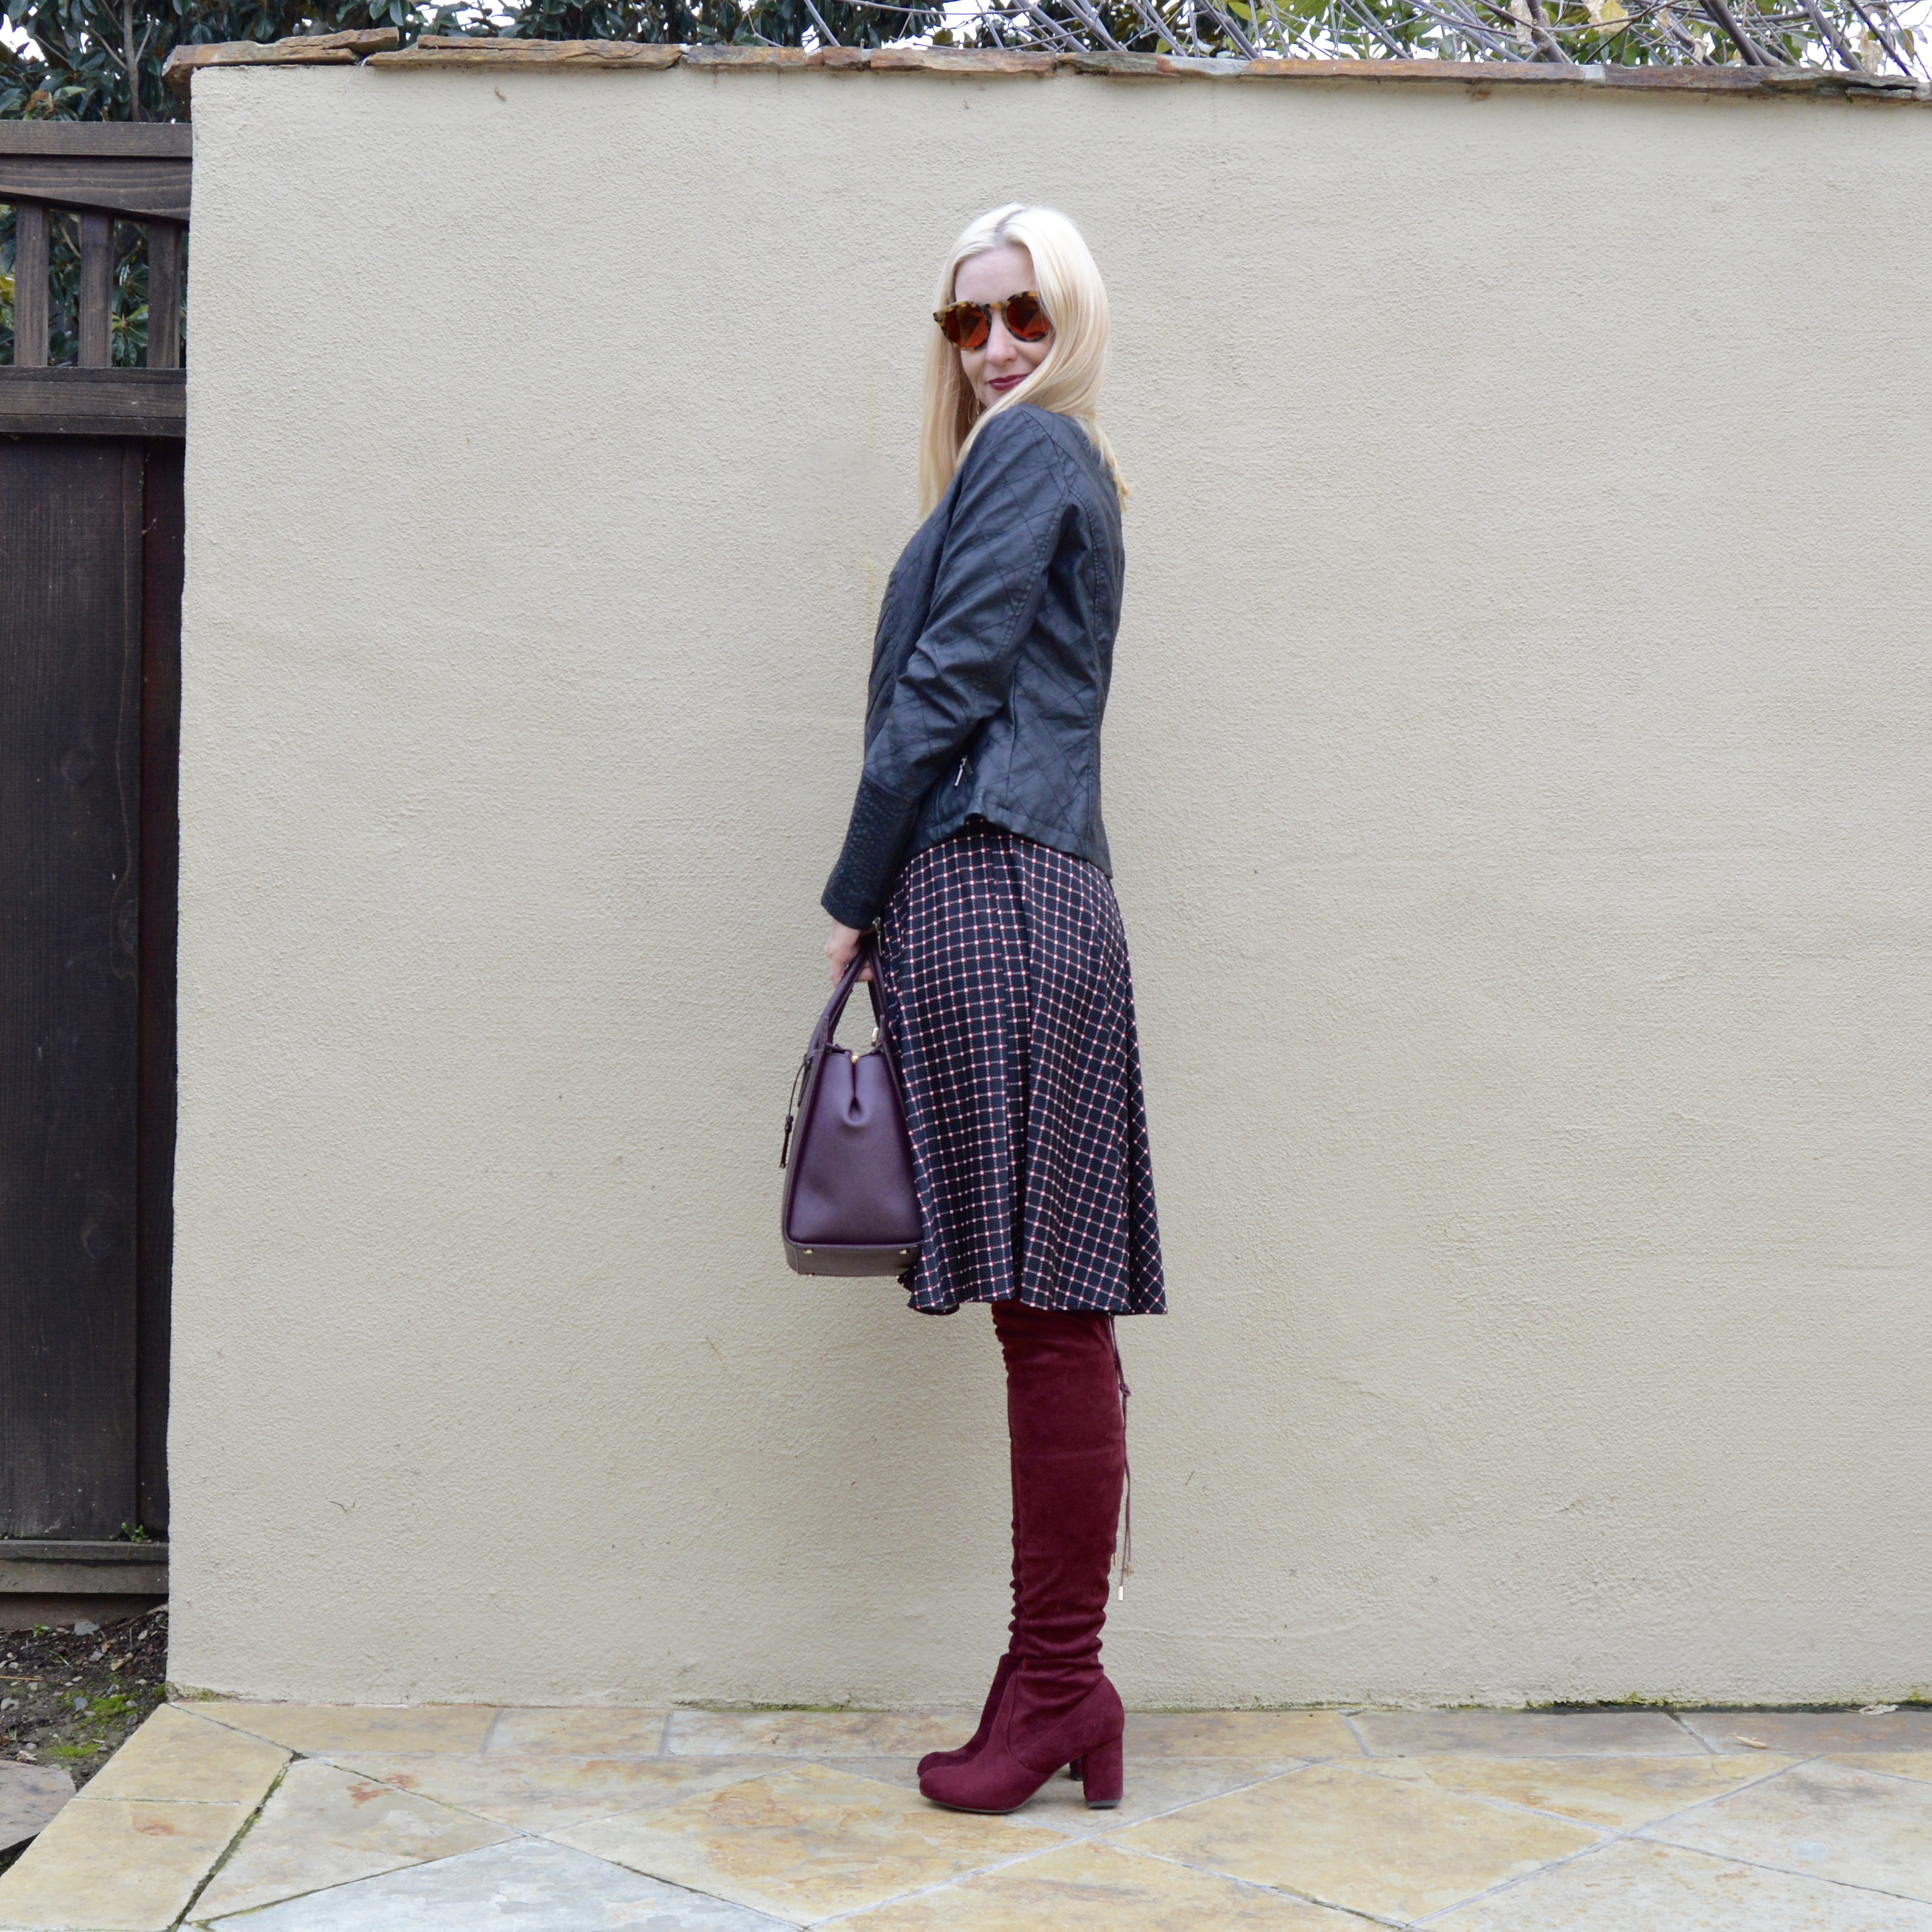 OOTD over 40, midlife style, outfit ideas, style tips